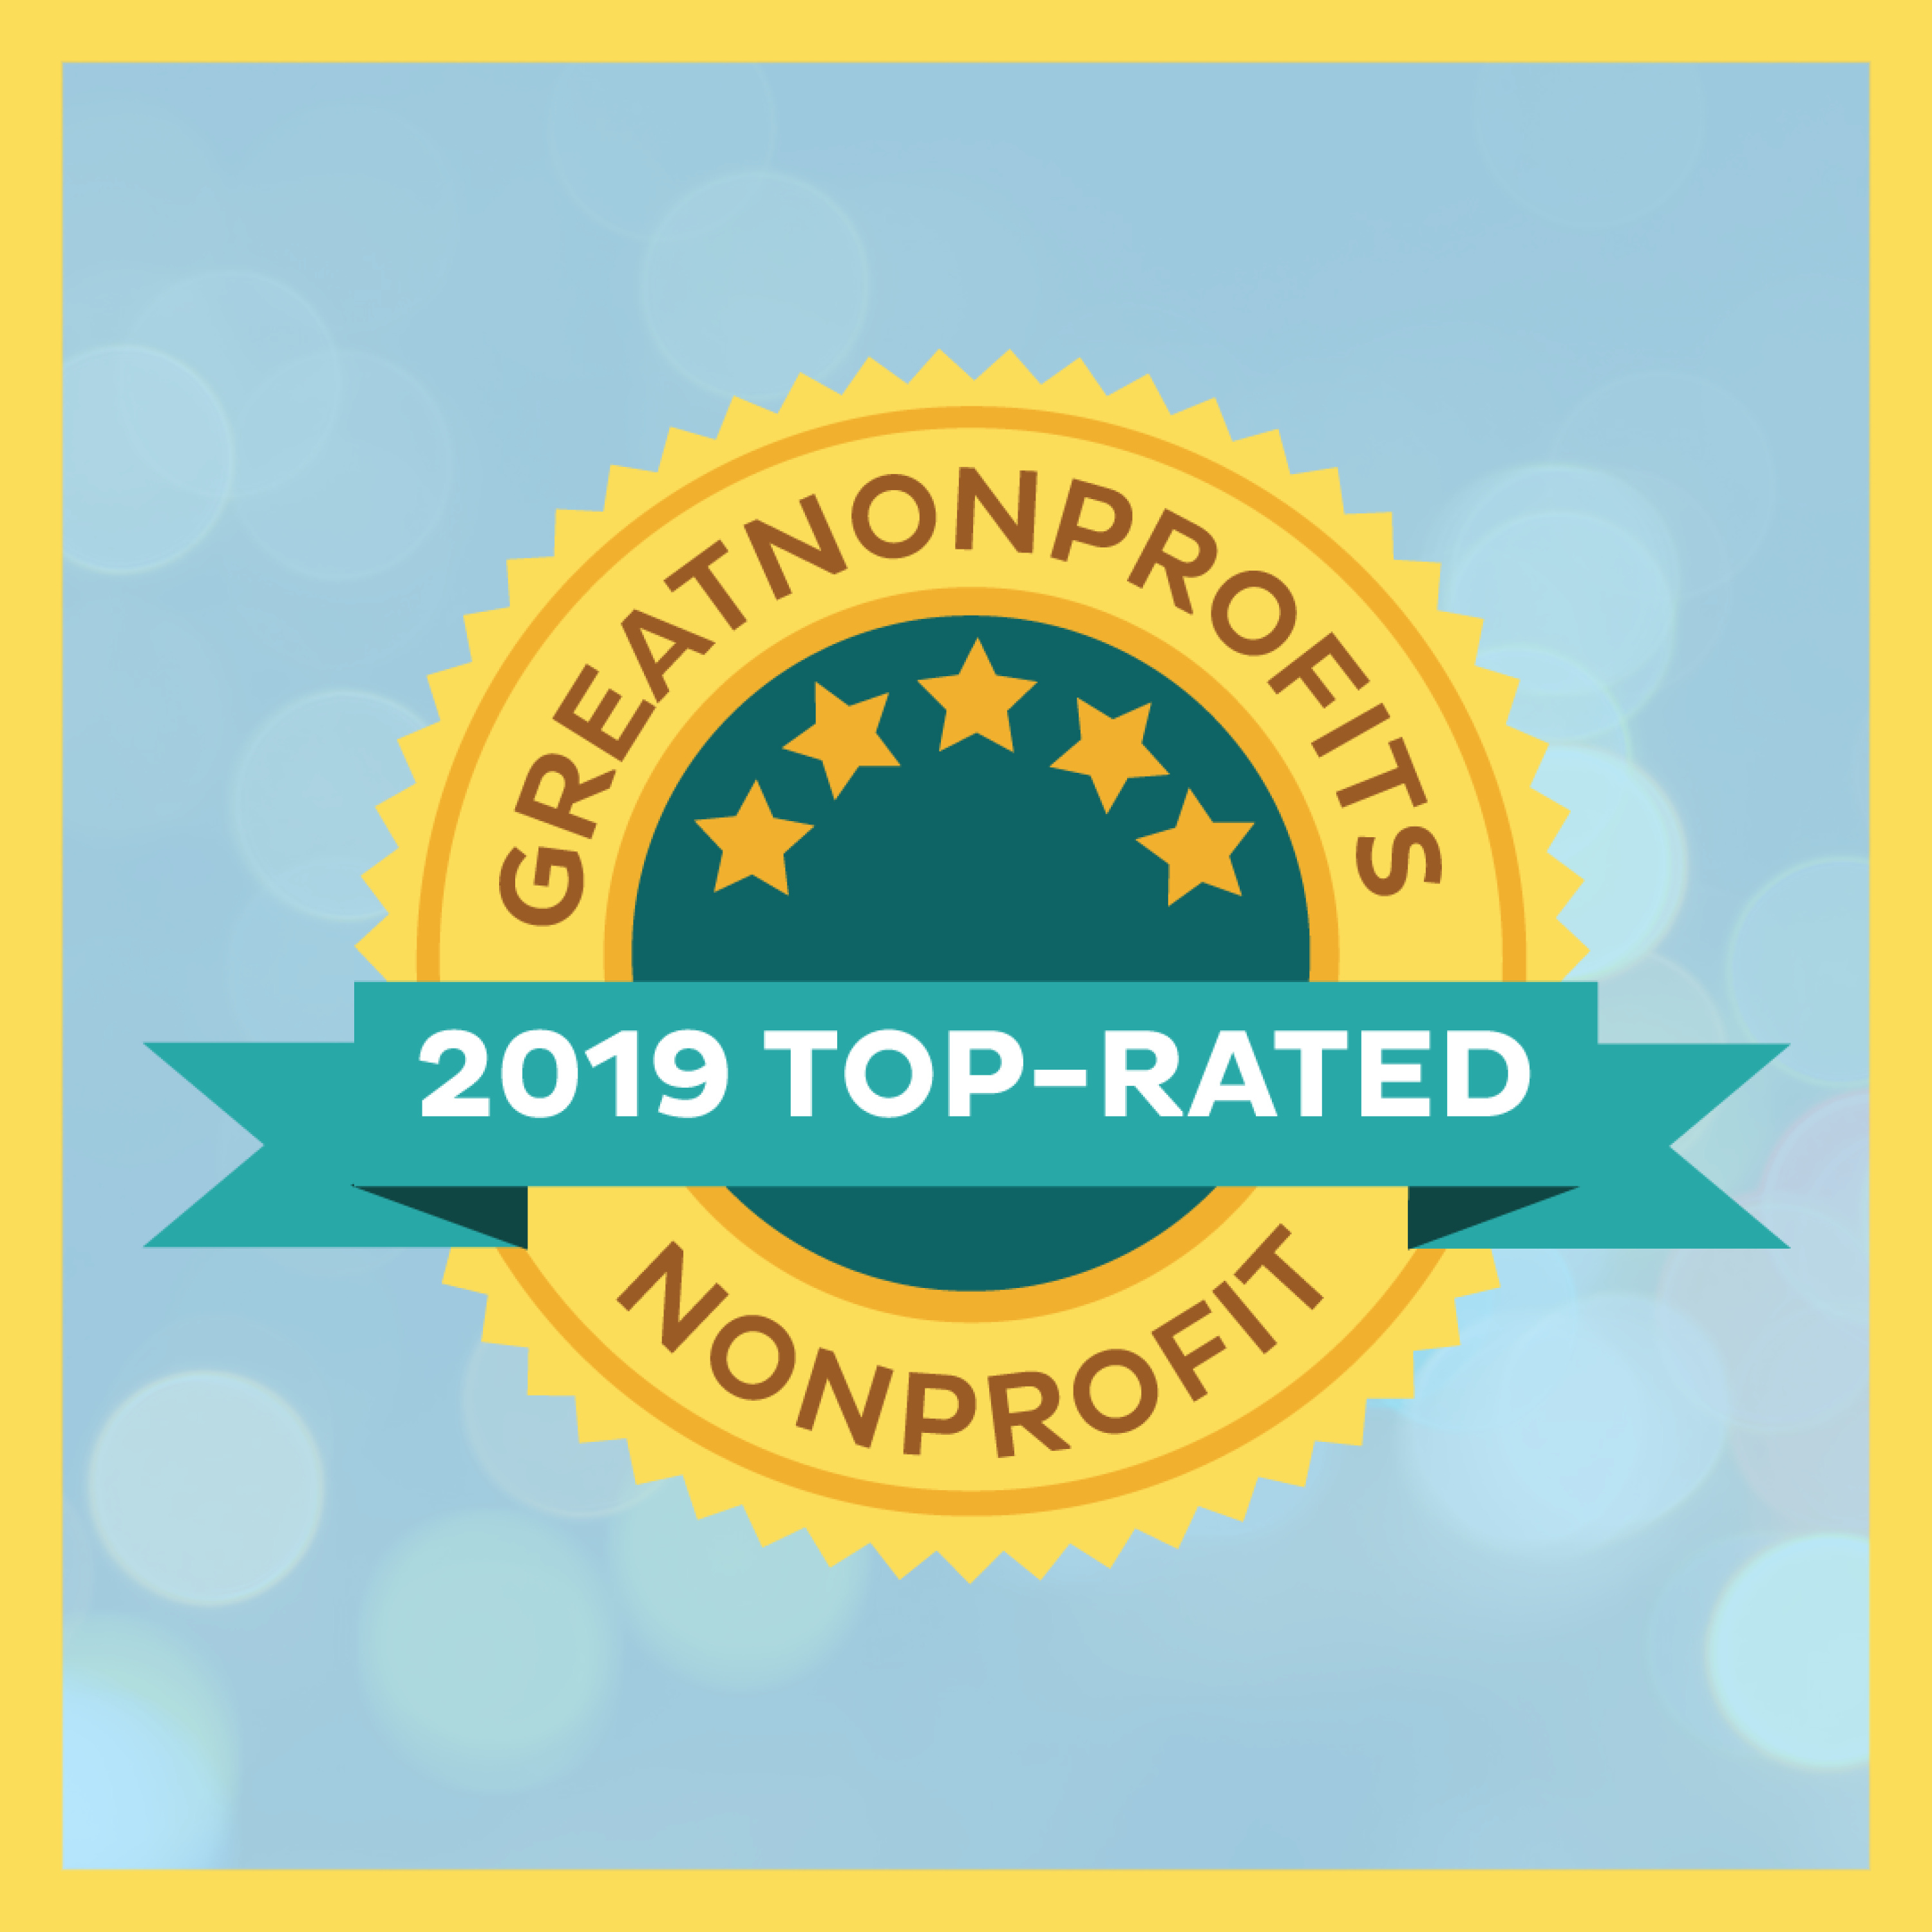 We're a 2019 Top-Rated Nonprofit!